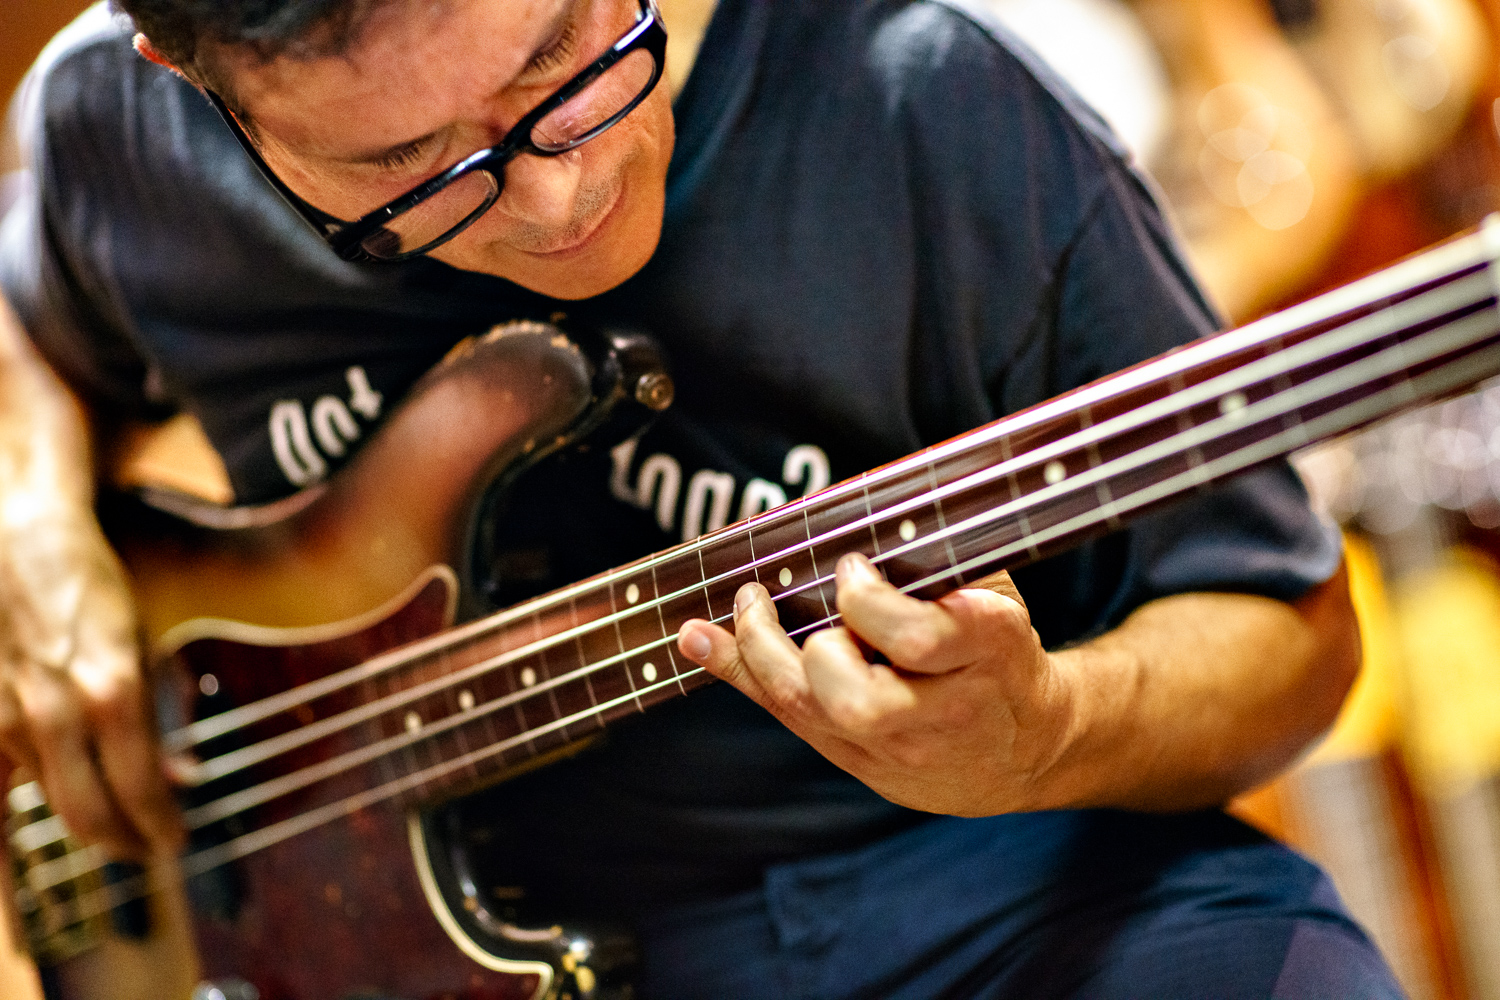 Juan Alderete, bass player with The Mars Volta  making an appearance at Wunjo Bass, Denmark Street, London WC2. Sony A7 + Canon FD 85mm f/1.2L